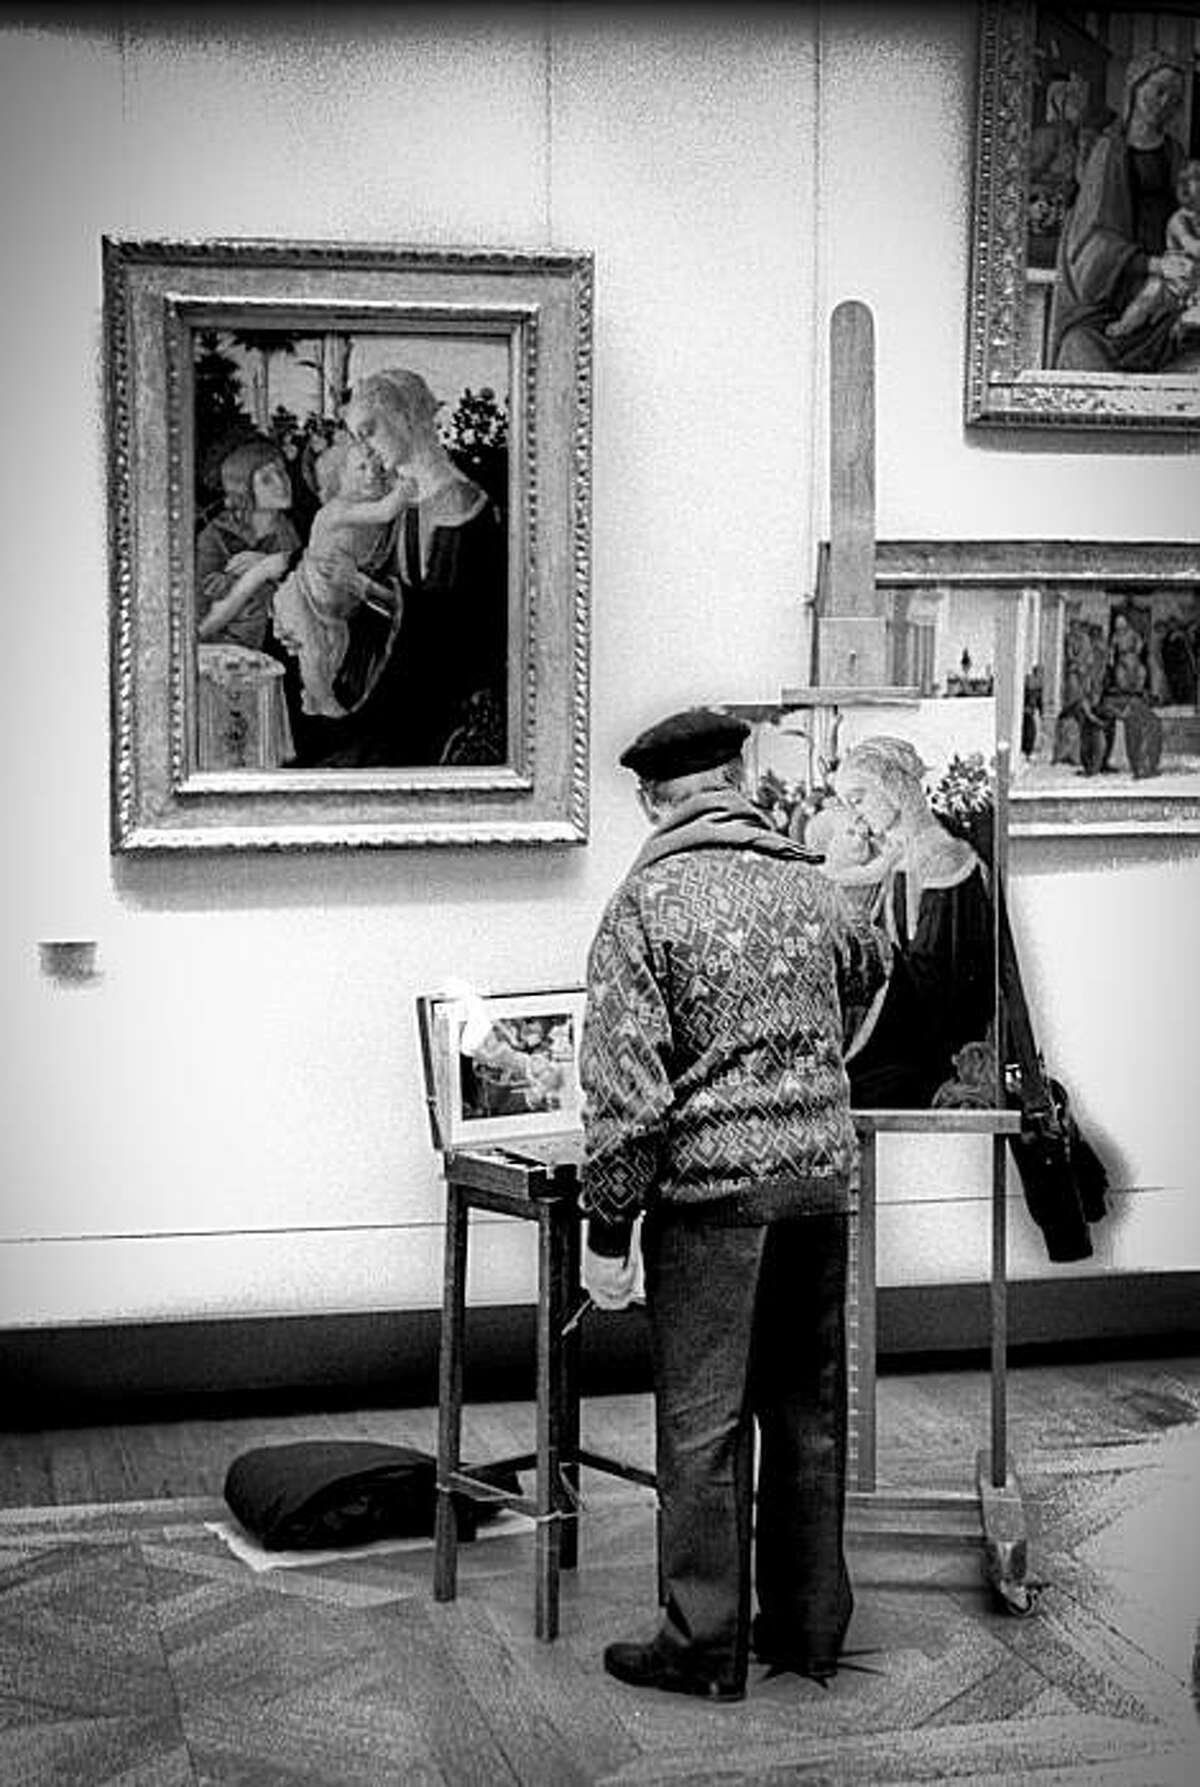 A man copies a painting in the Louvre in Paris, France in 2000.